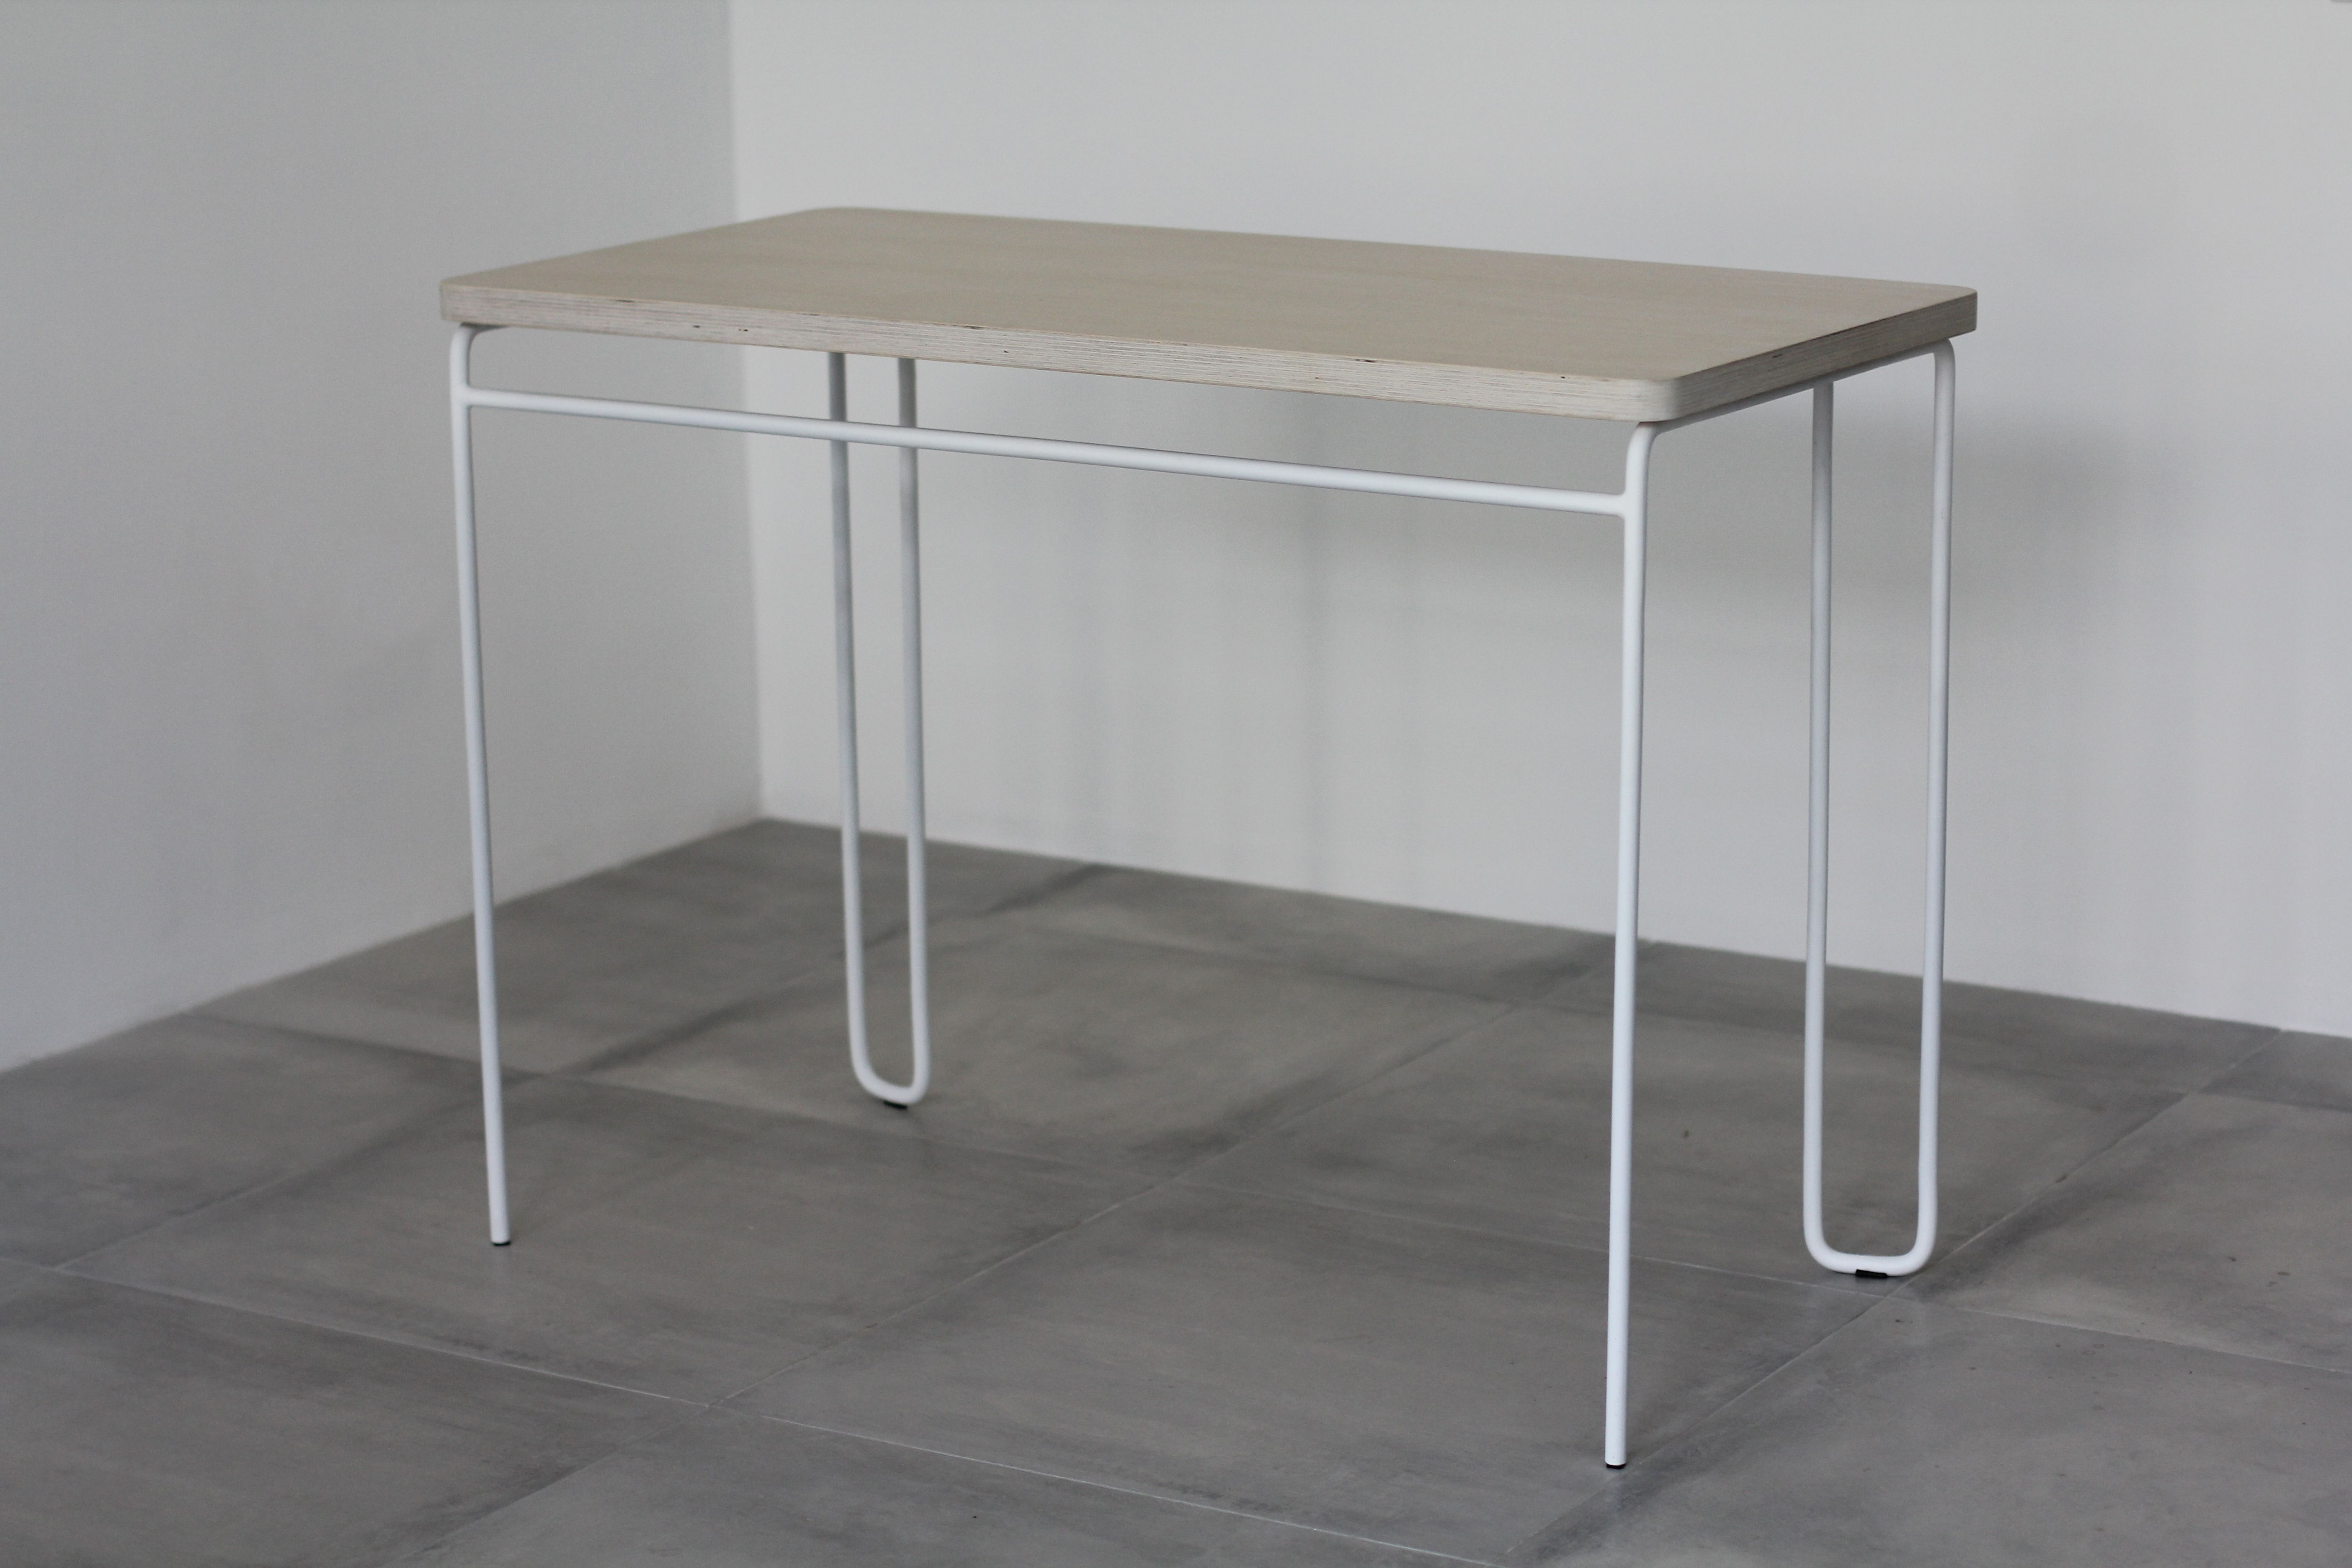 Table Bend Broox Furniture Table Furniture Table Legs